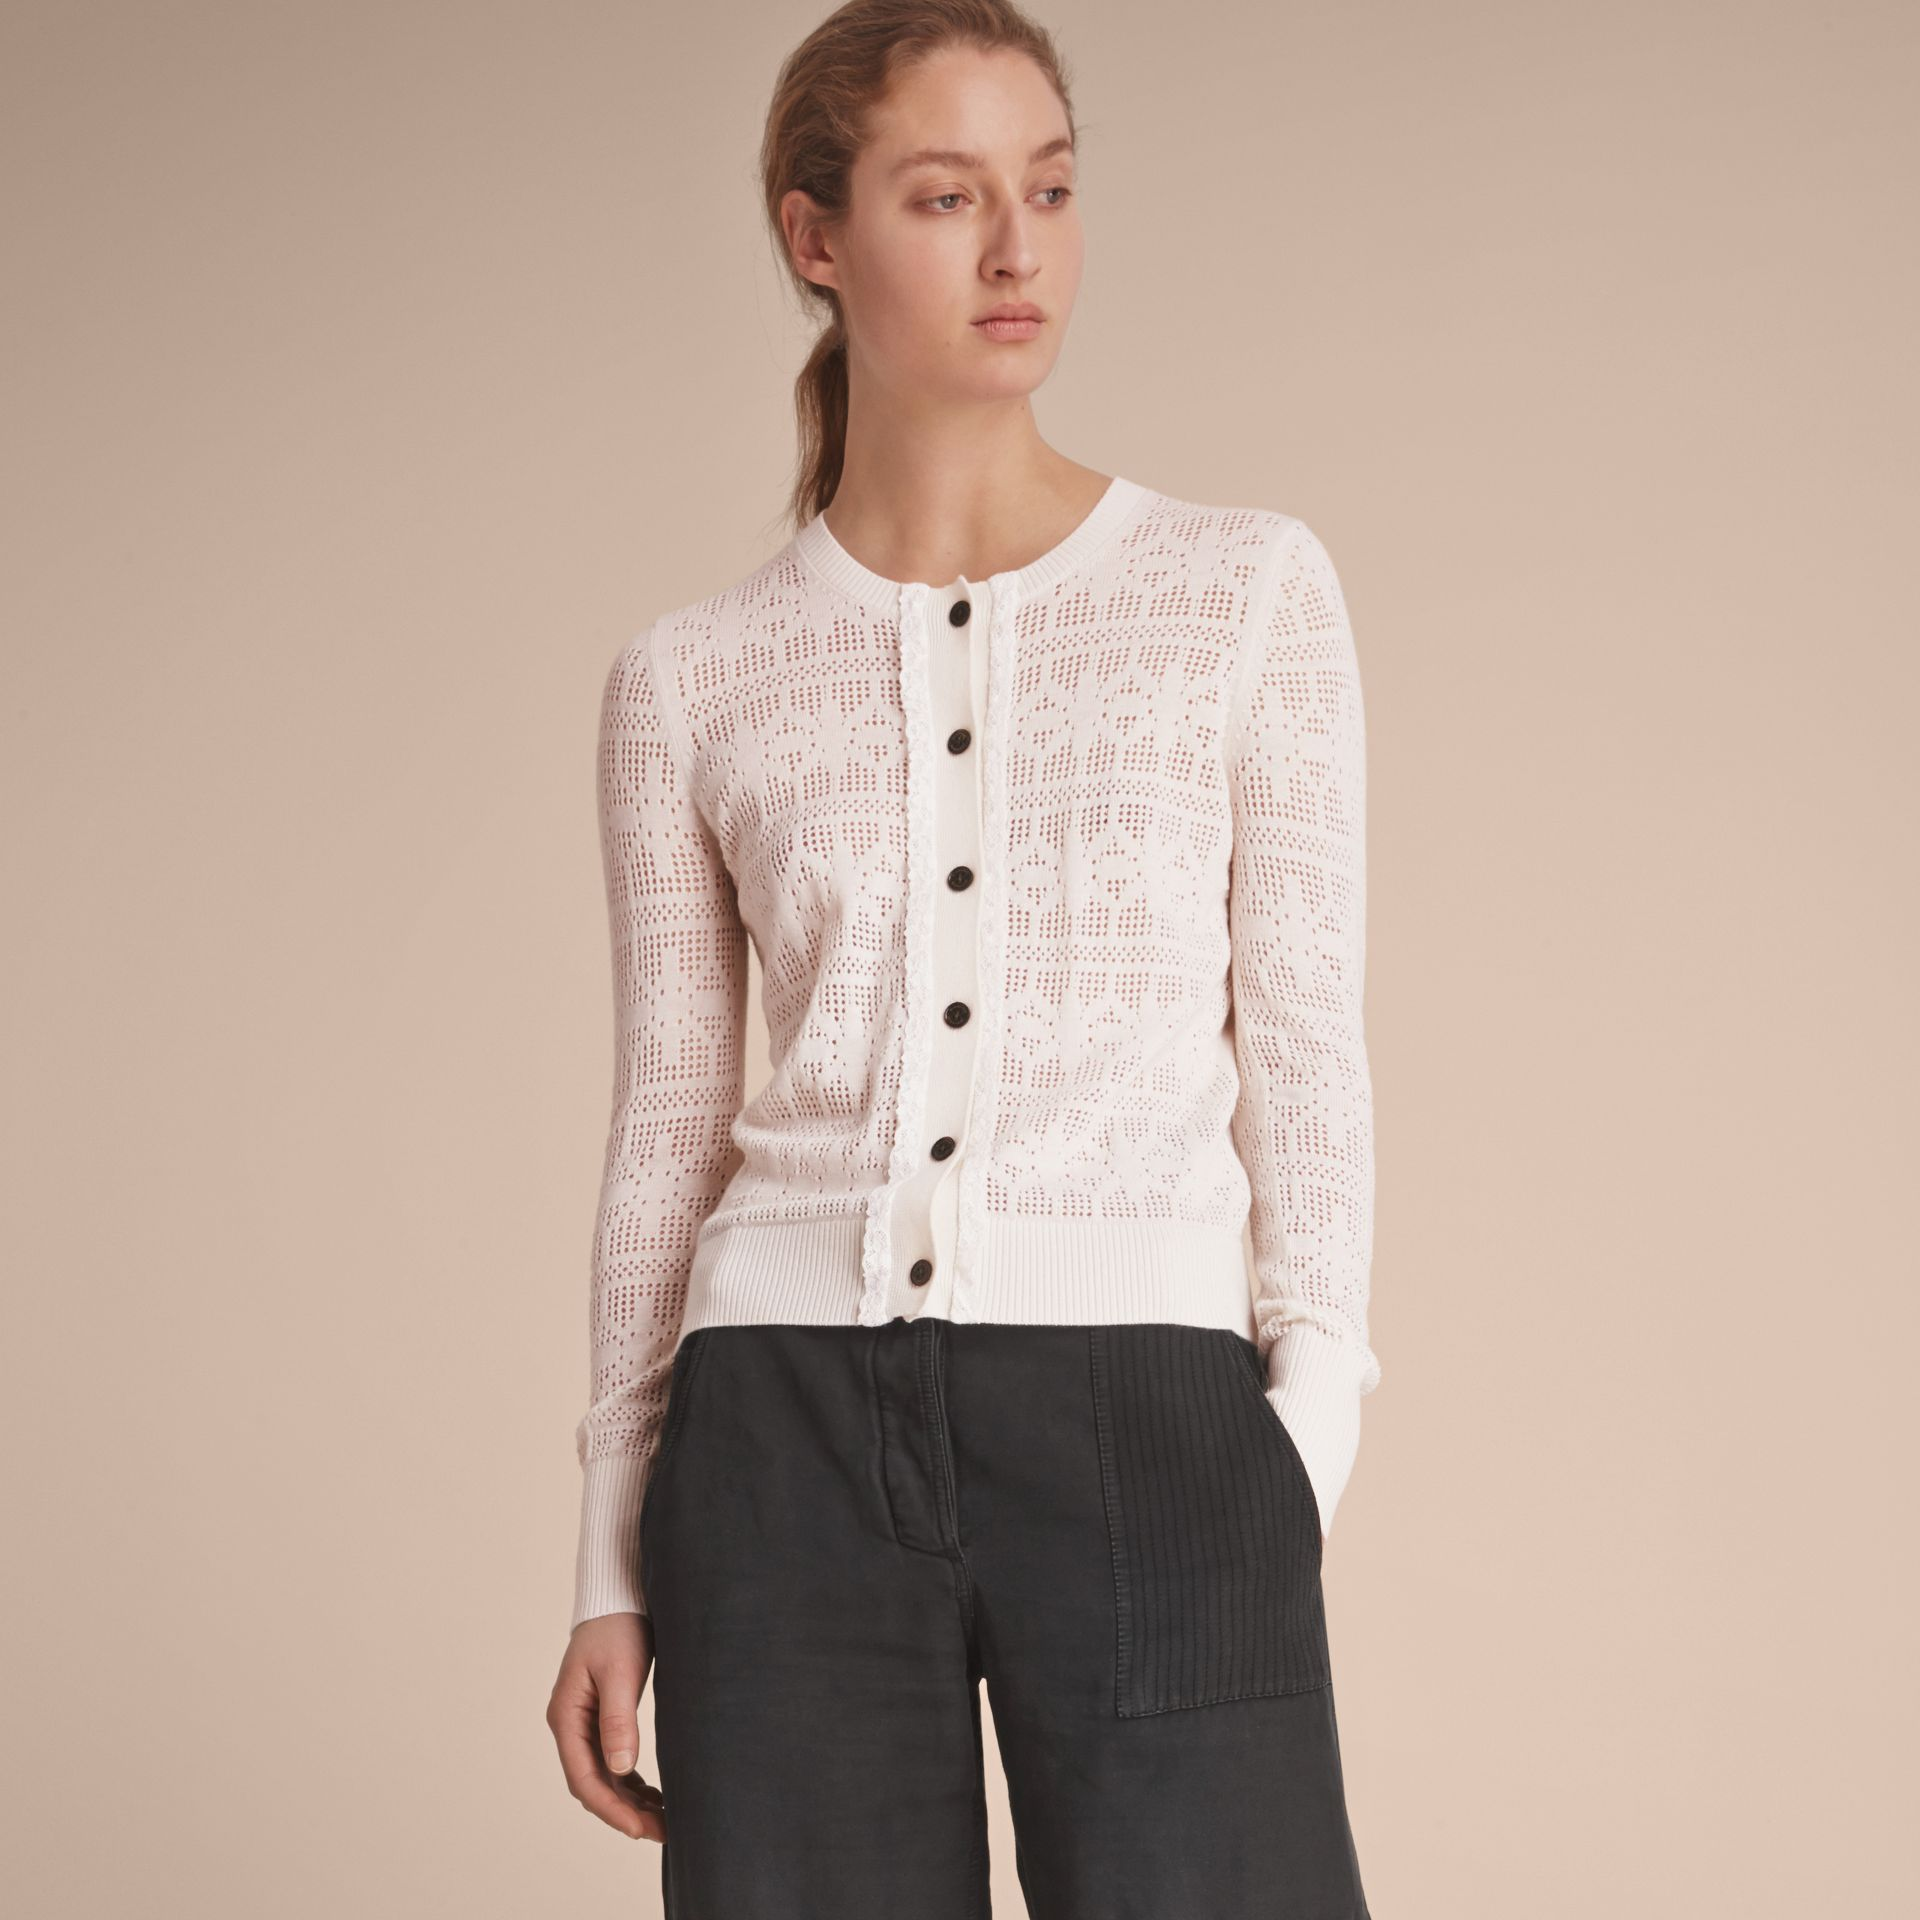 Lace Trim Knitted Wool and Cashmere Cardigan - gallery image 6